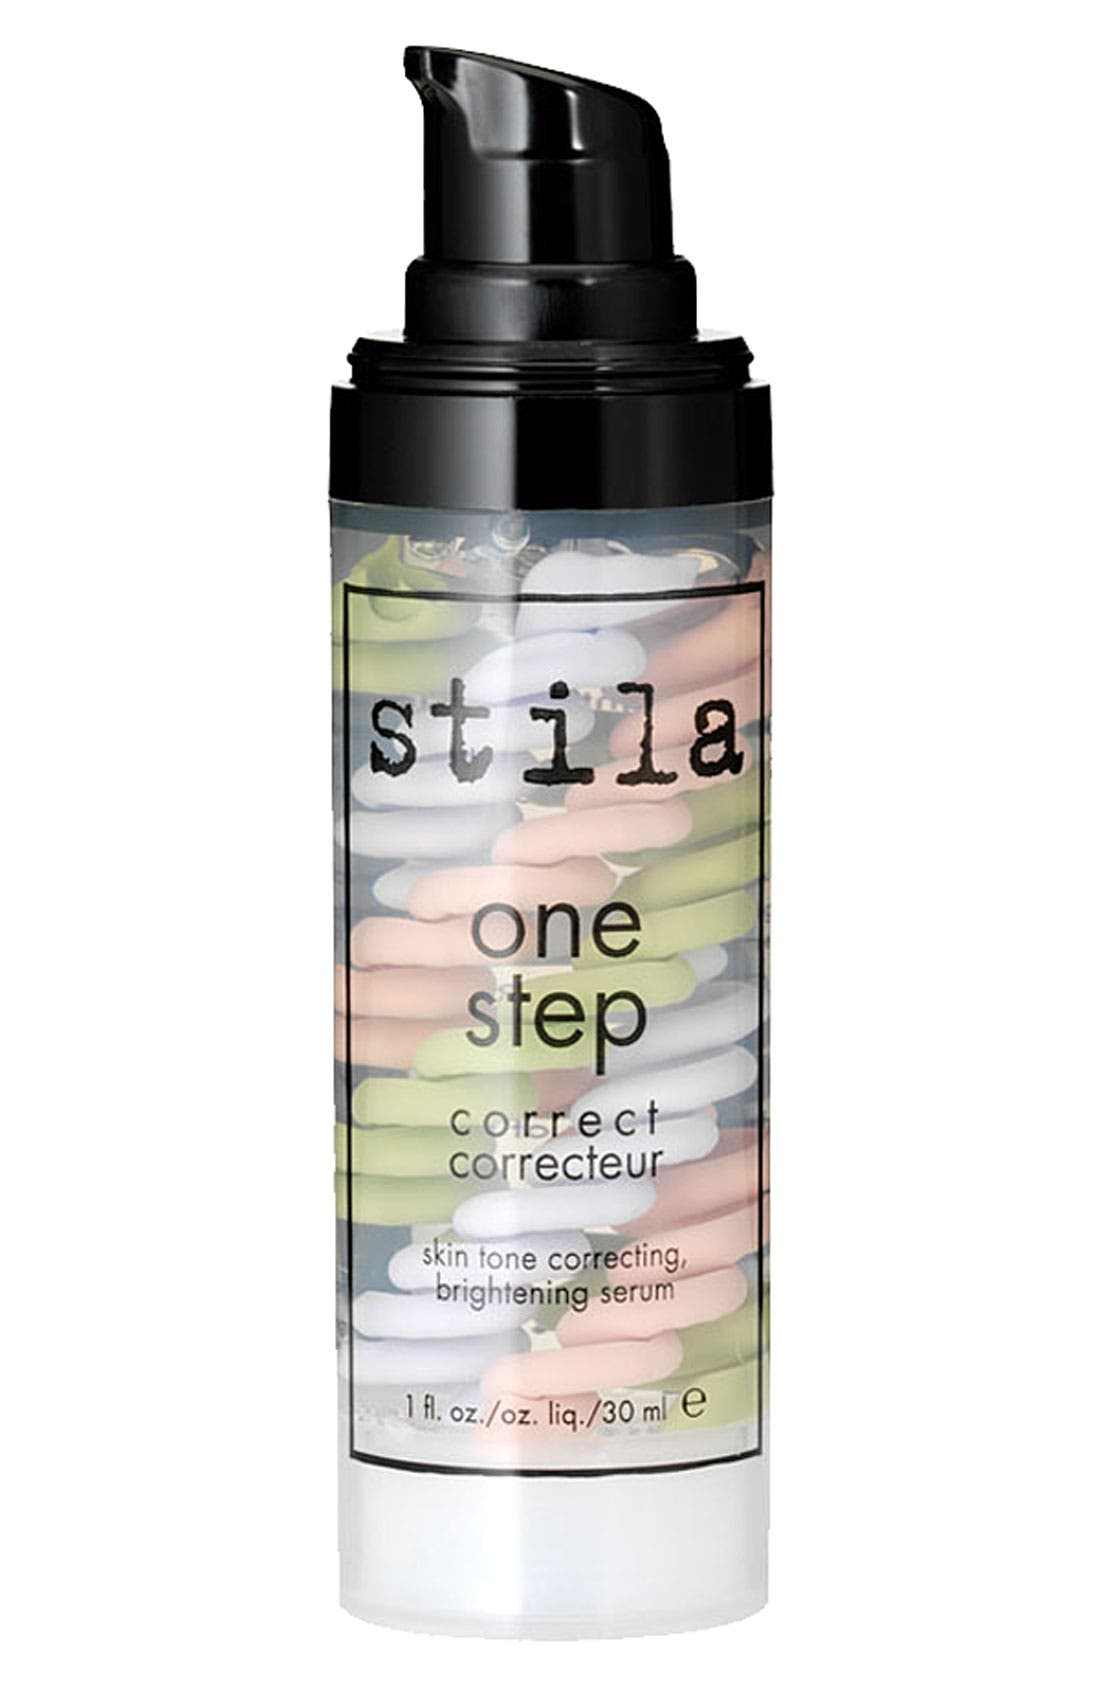 stila 'one step correct' skin tone correcting brightening serum